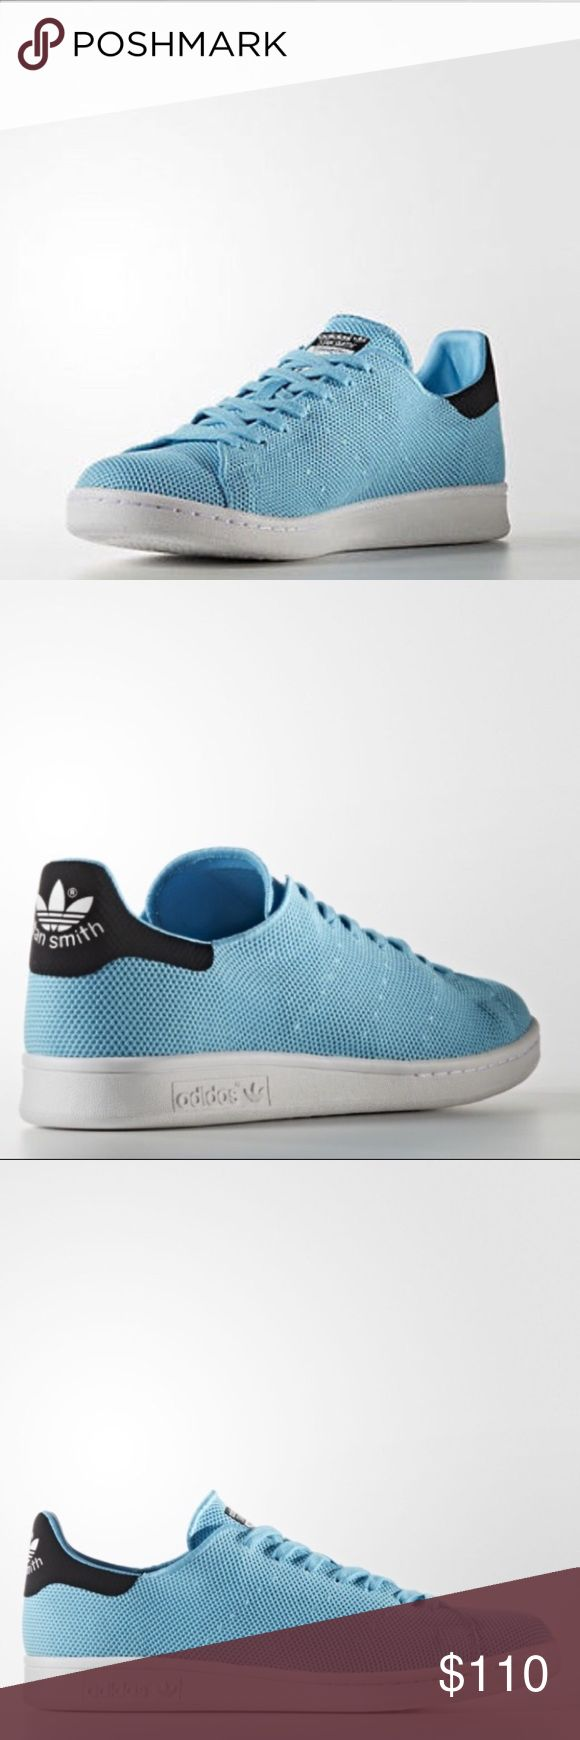 Adidas New! Adidas Stan Smith Tennis Shoes Blue. adidas Shoes Sneakers